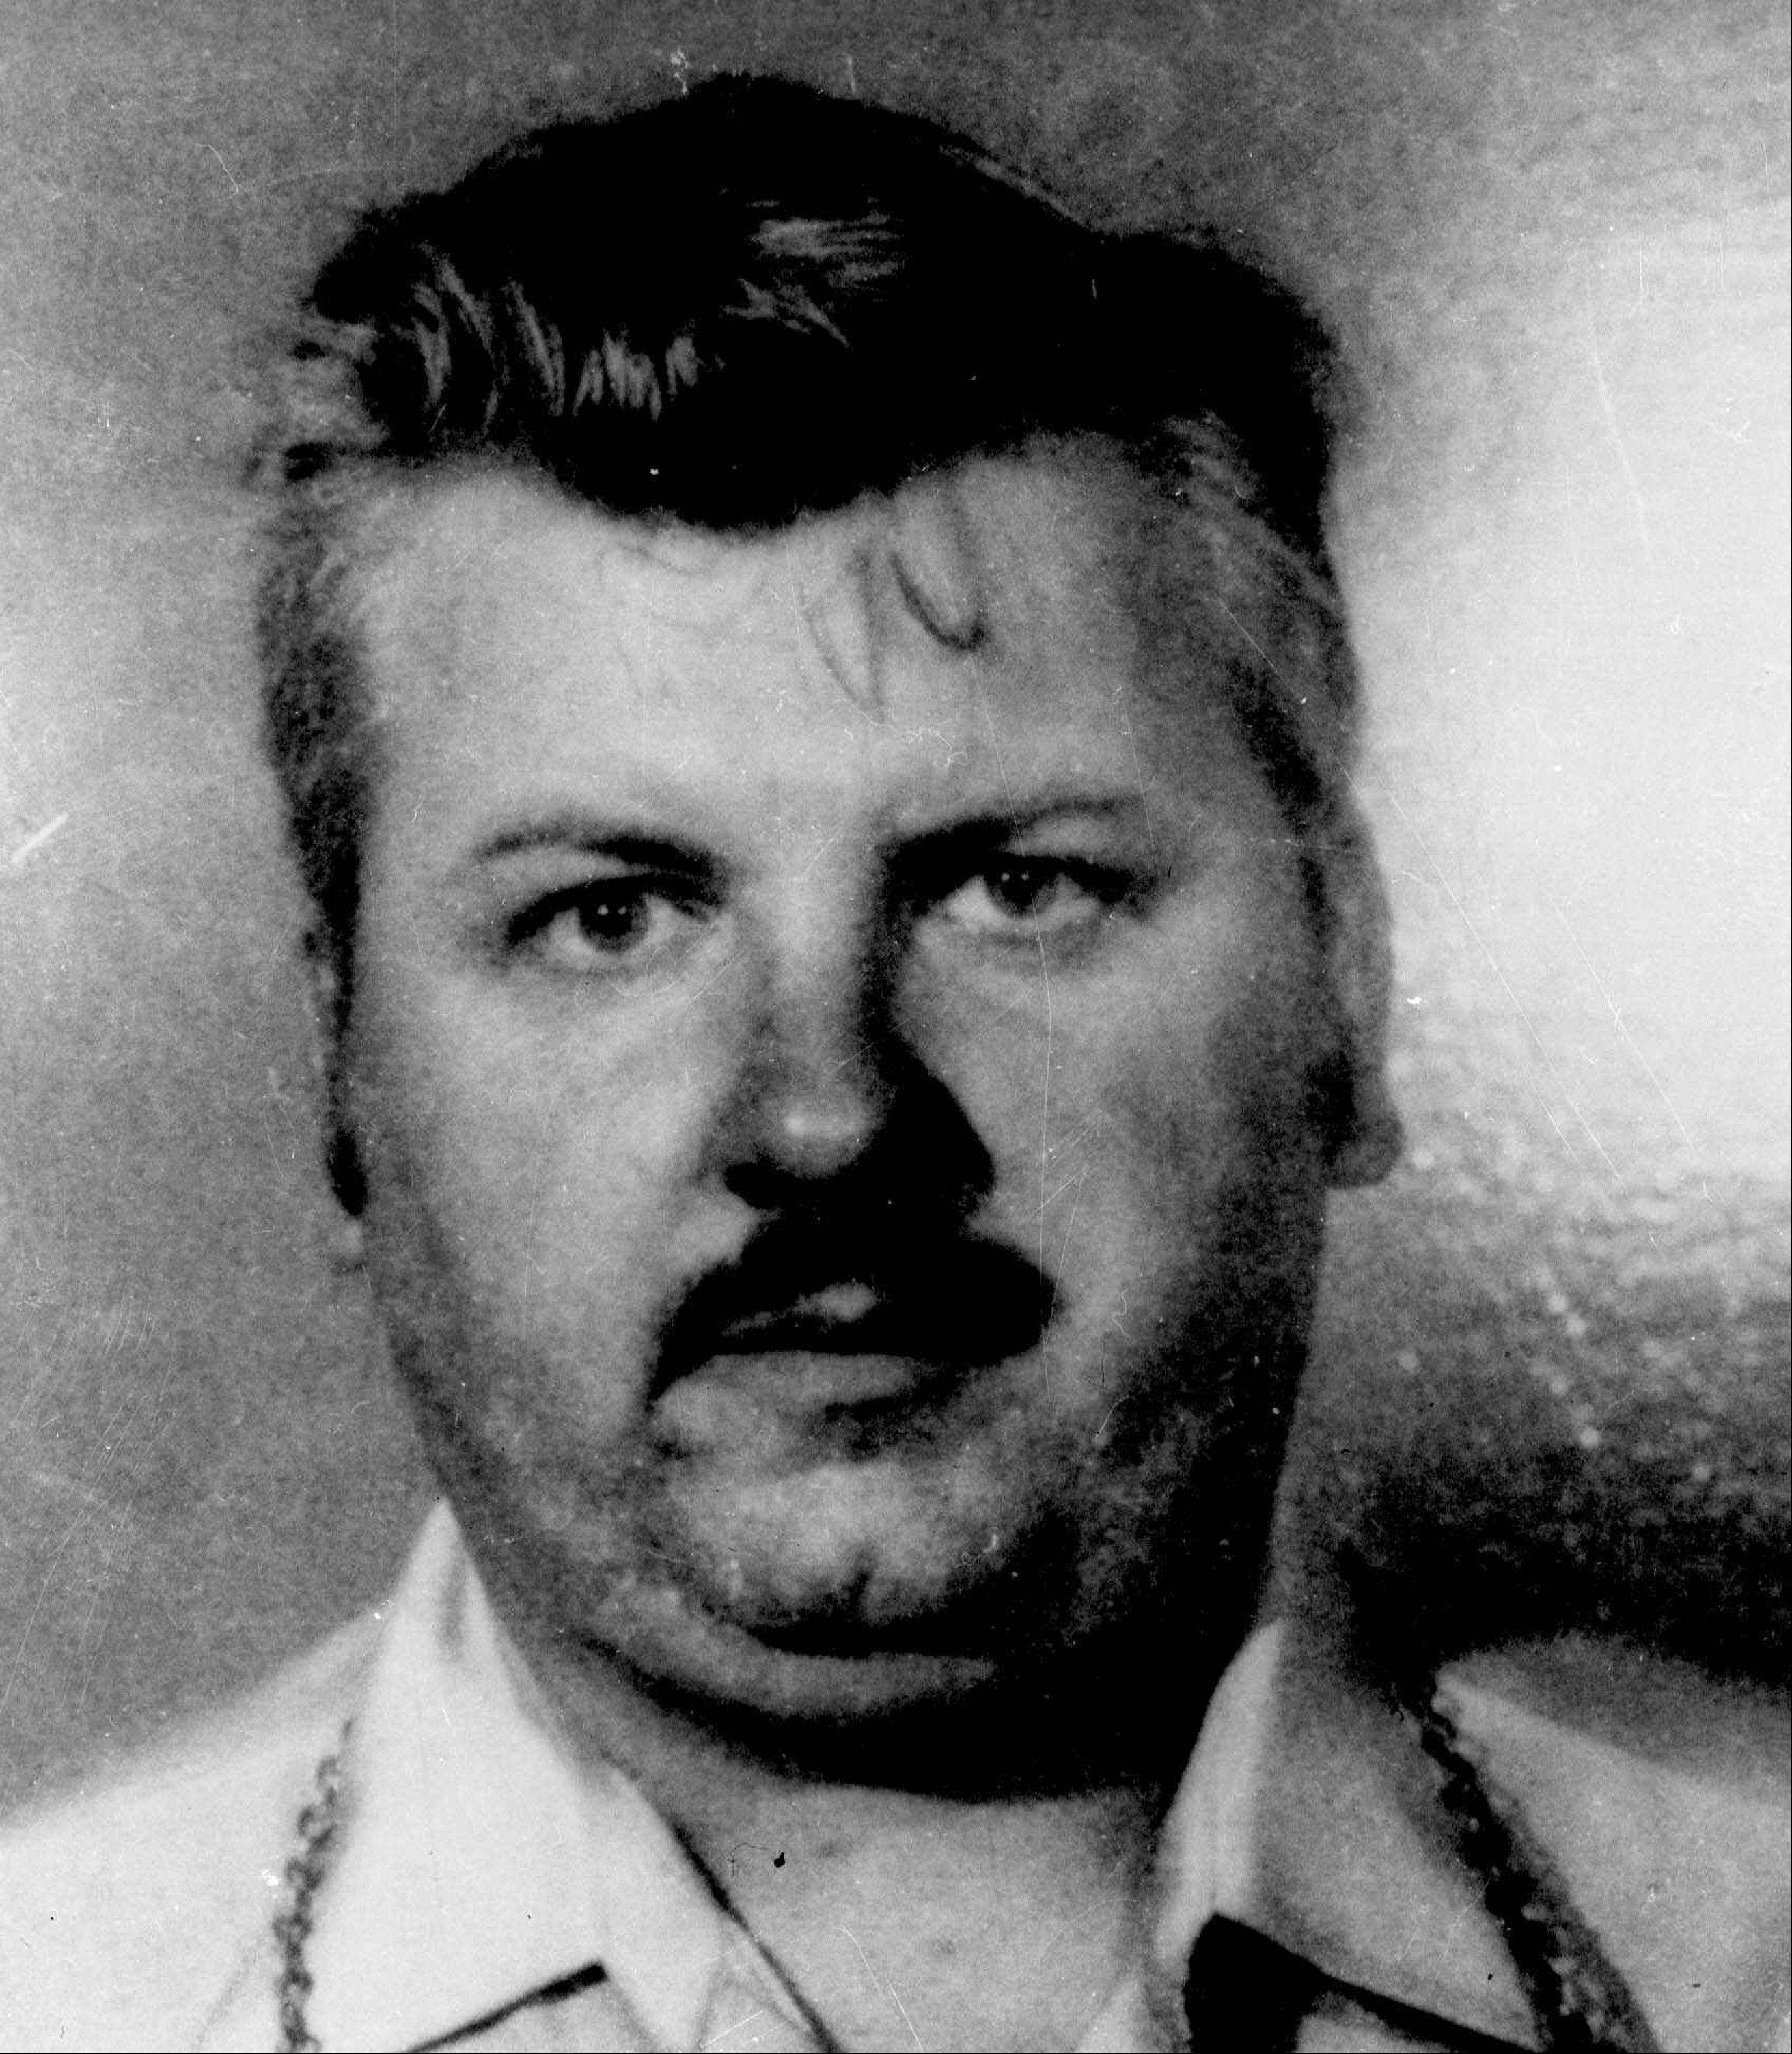 Three vials of John Wayne Gacy's blood were recently discovered by Cook County Sheriff's detective Jason Moran. The sheriff's office is creating DNA profiles from the blood of Gacy and other executed killers and putting them in a national DNA database of profiles created from blood, semen, or strands of hair found at crime scenes and on the bodies of victims. What they hope to find is evidence that links the long-dead killers to the coldest of cold cases and prompt authorities in other states to submit the DNA of their own executed inmates and maybe evidence from decades-old crime scenes to help them solve their own cases.